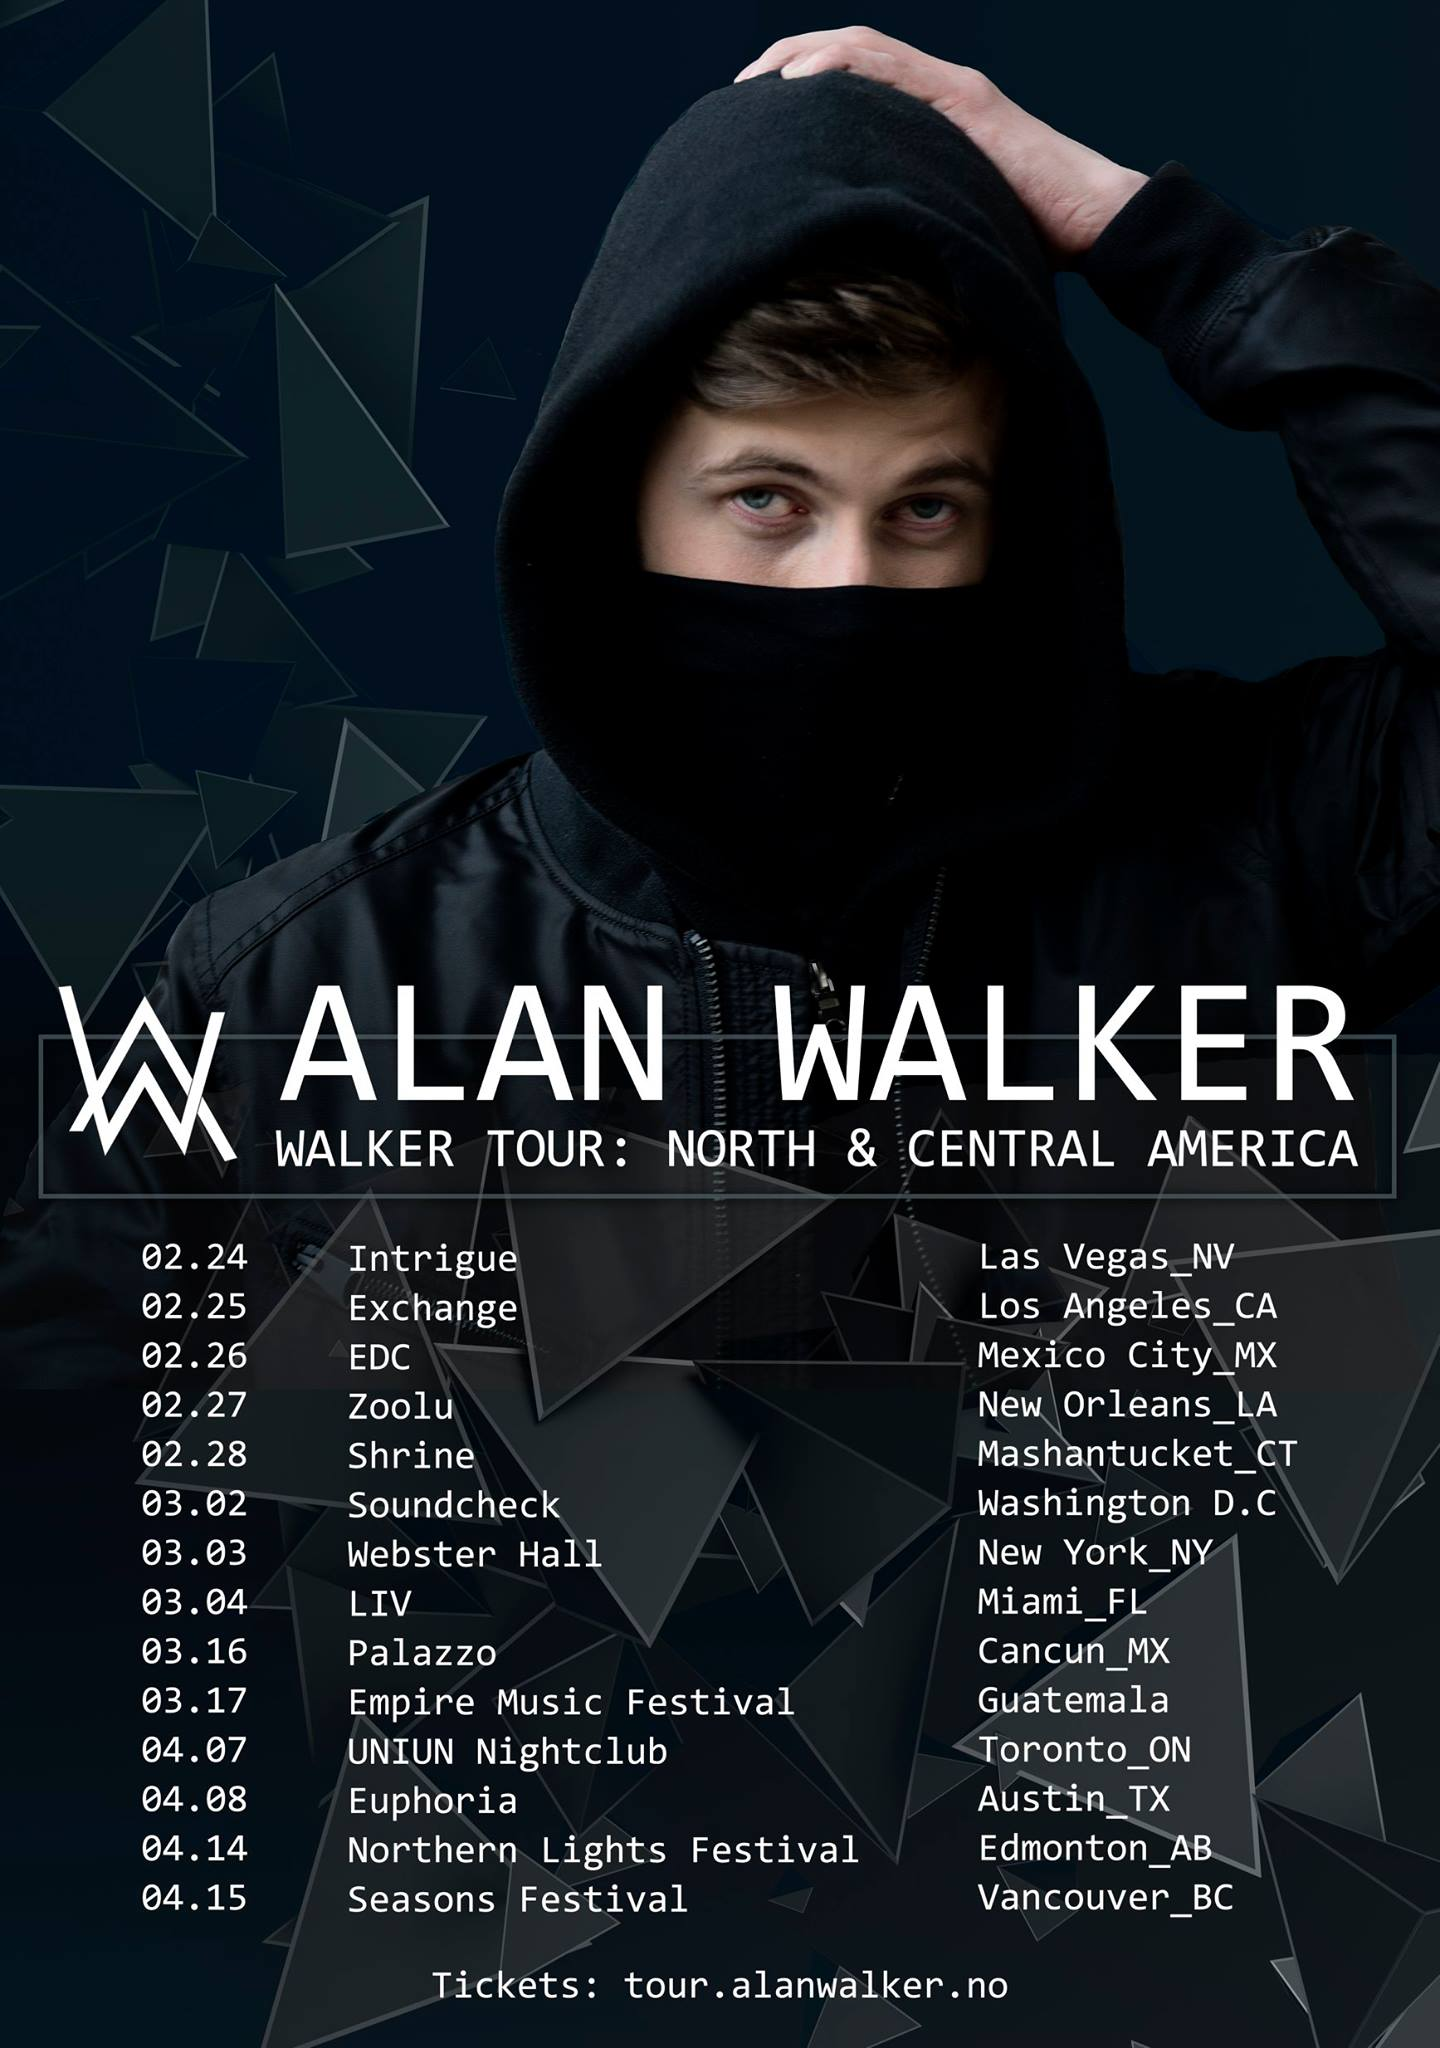 Alan Walker tour poster